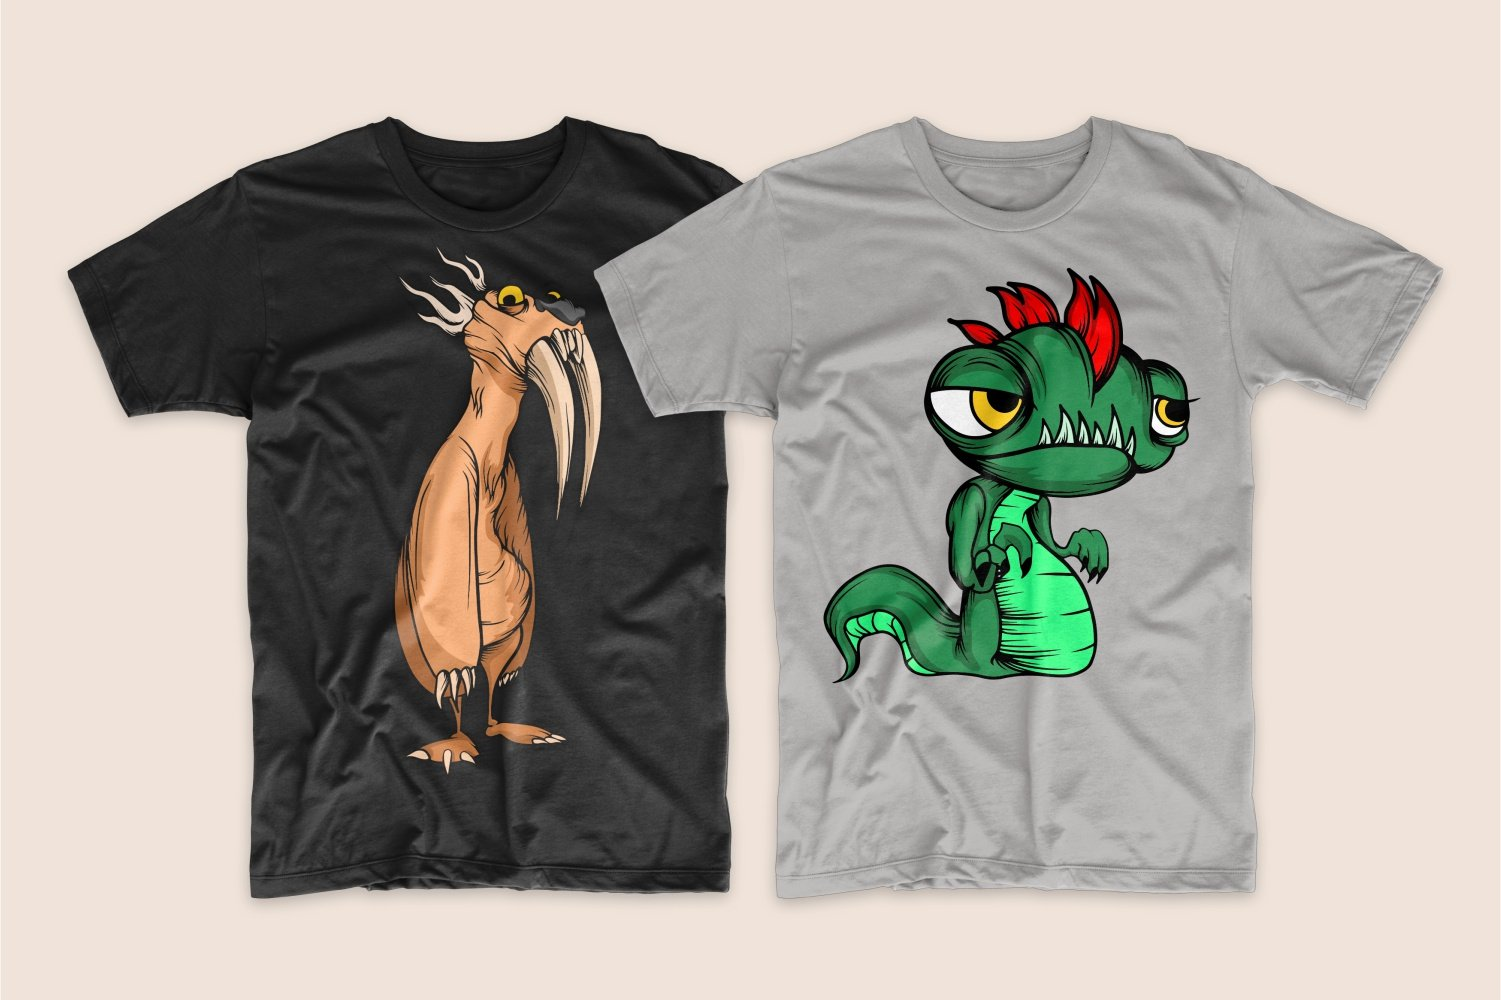 A black T-shirt with a ginger monster with large fangs and a gray T-shirt with a round-headed green monster.